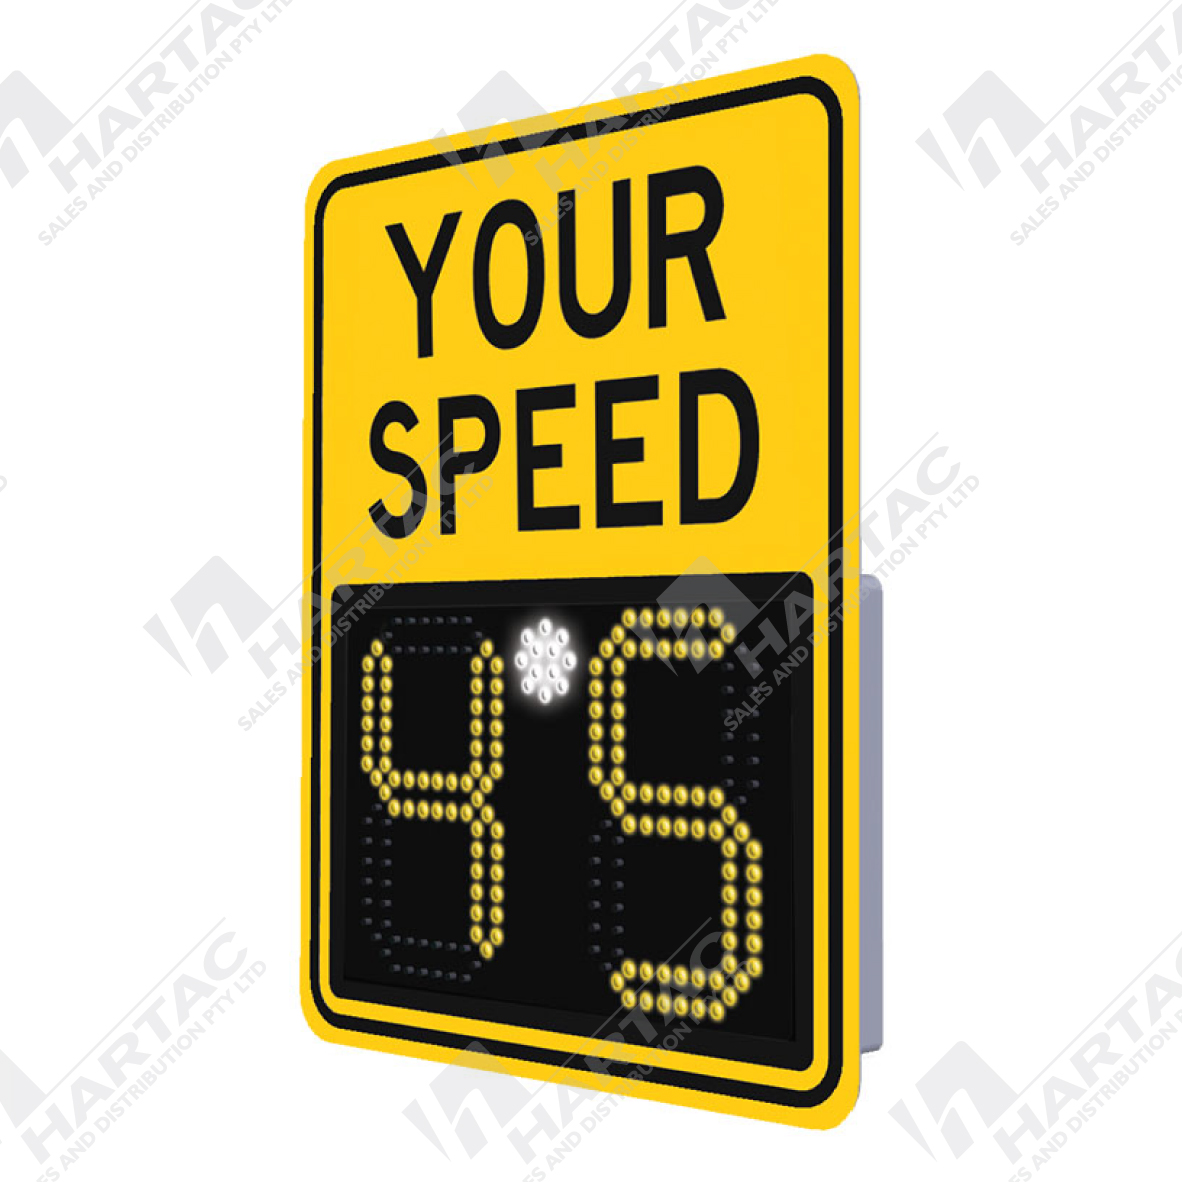 Digital Radar Speed Sign